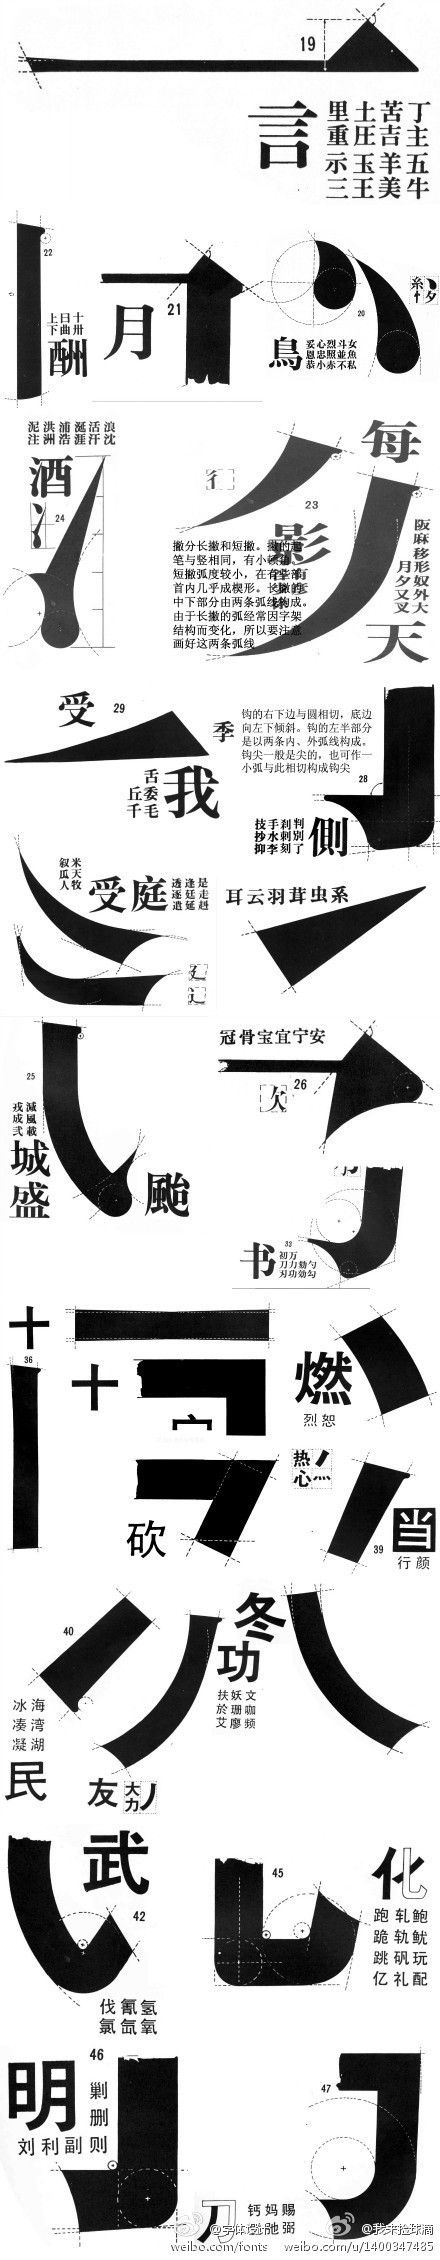 Chinese typographic poster design by 王亚非